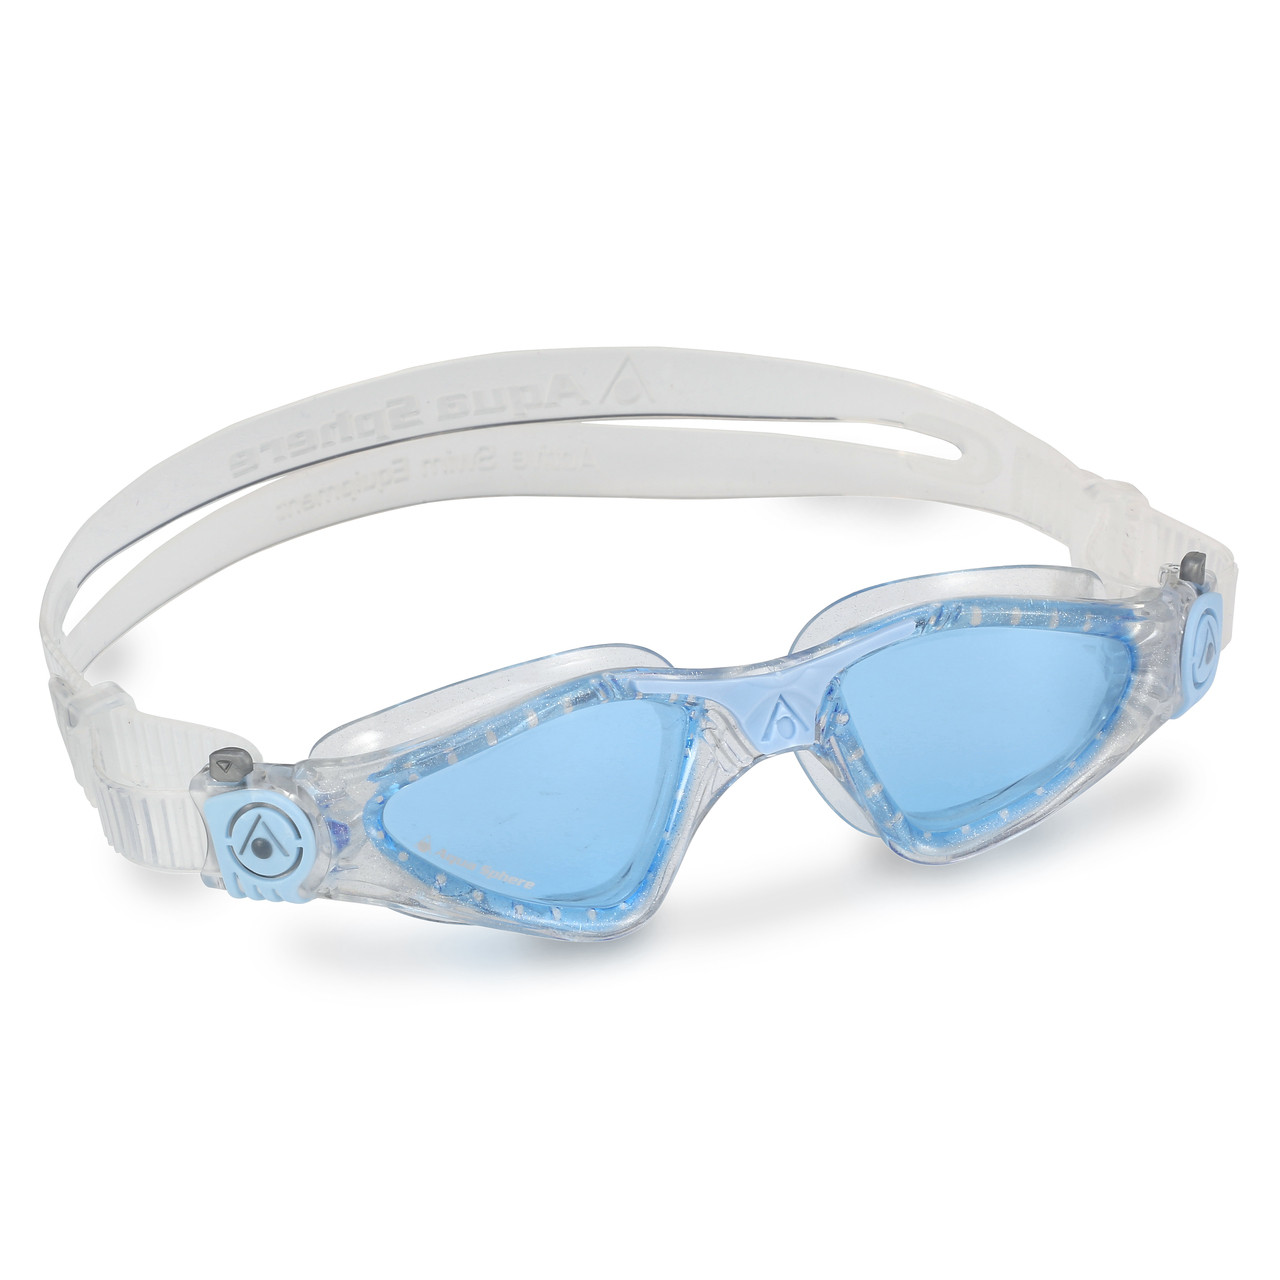 Aqua Sphere Kayenne Lady Goggles With Blue Lens - 2019 price